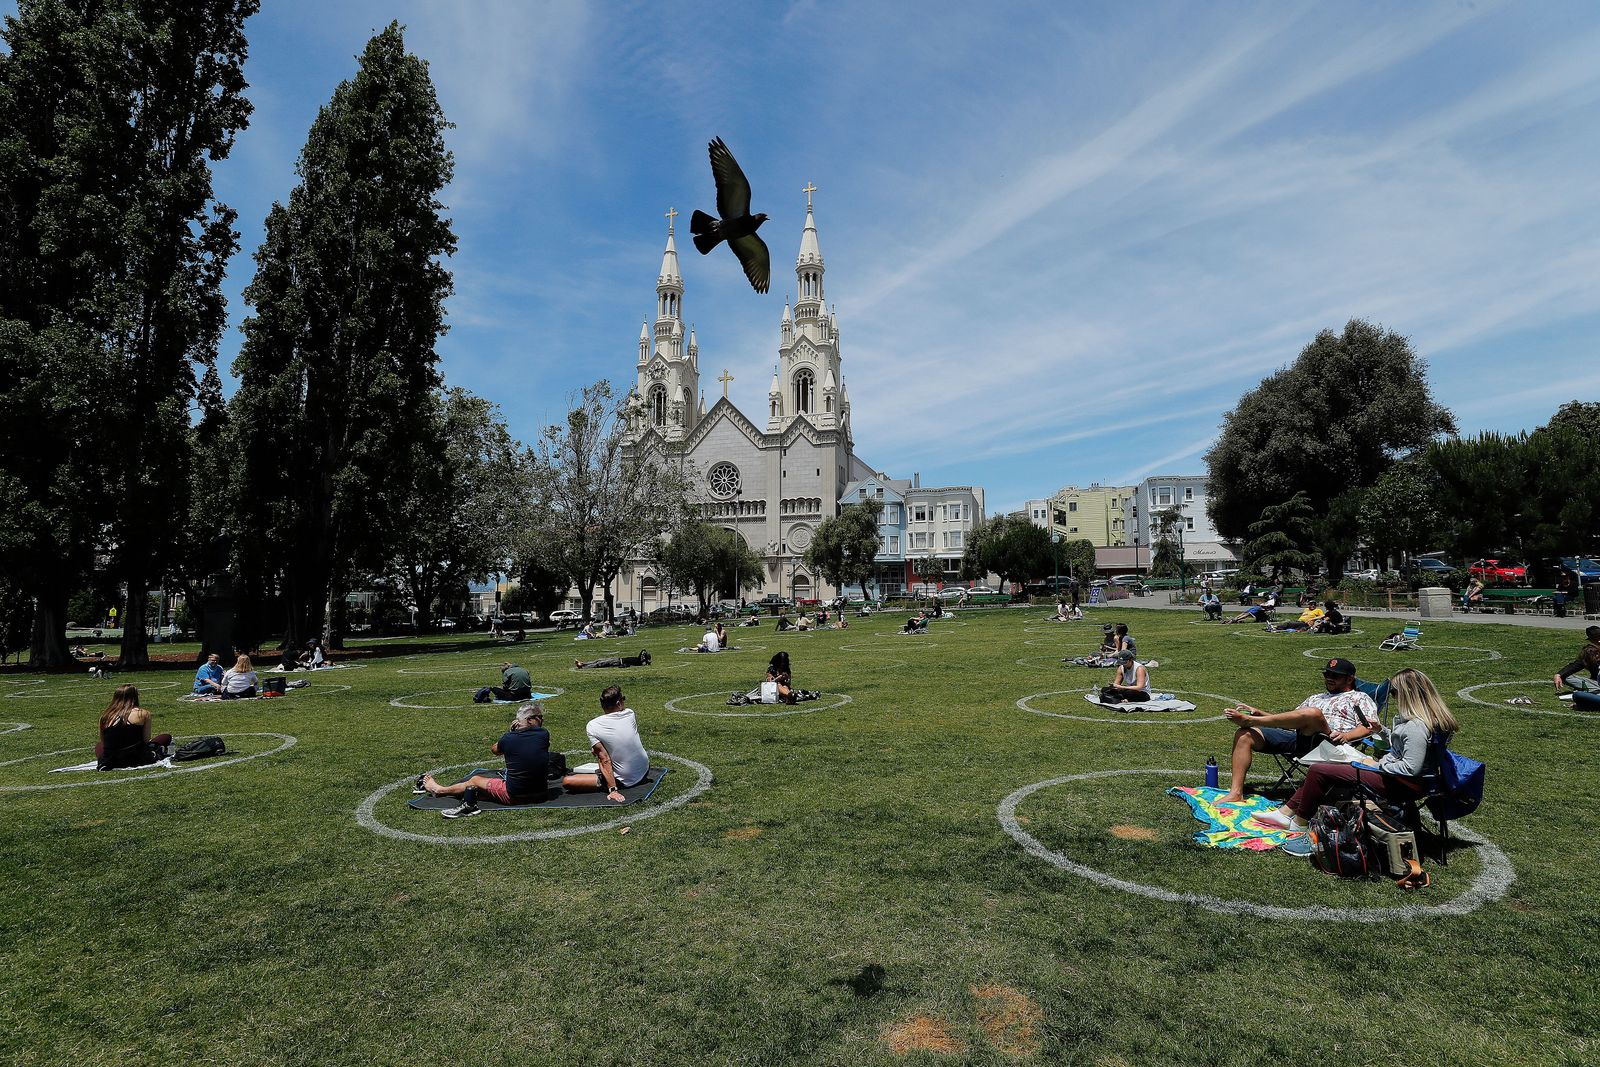 San Francsico Parks Social Distance Circles, San Francisco, USA - 22 May 2020